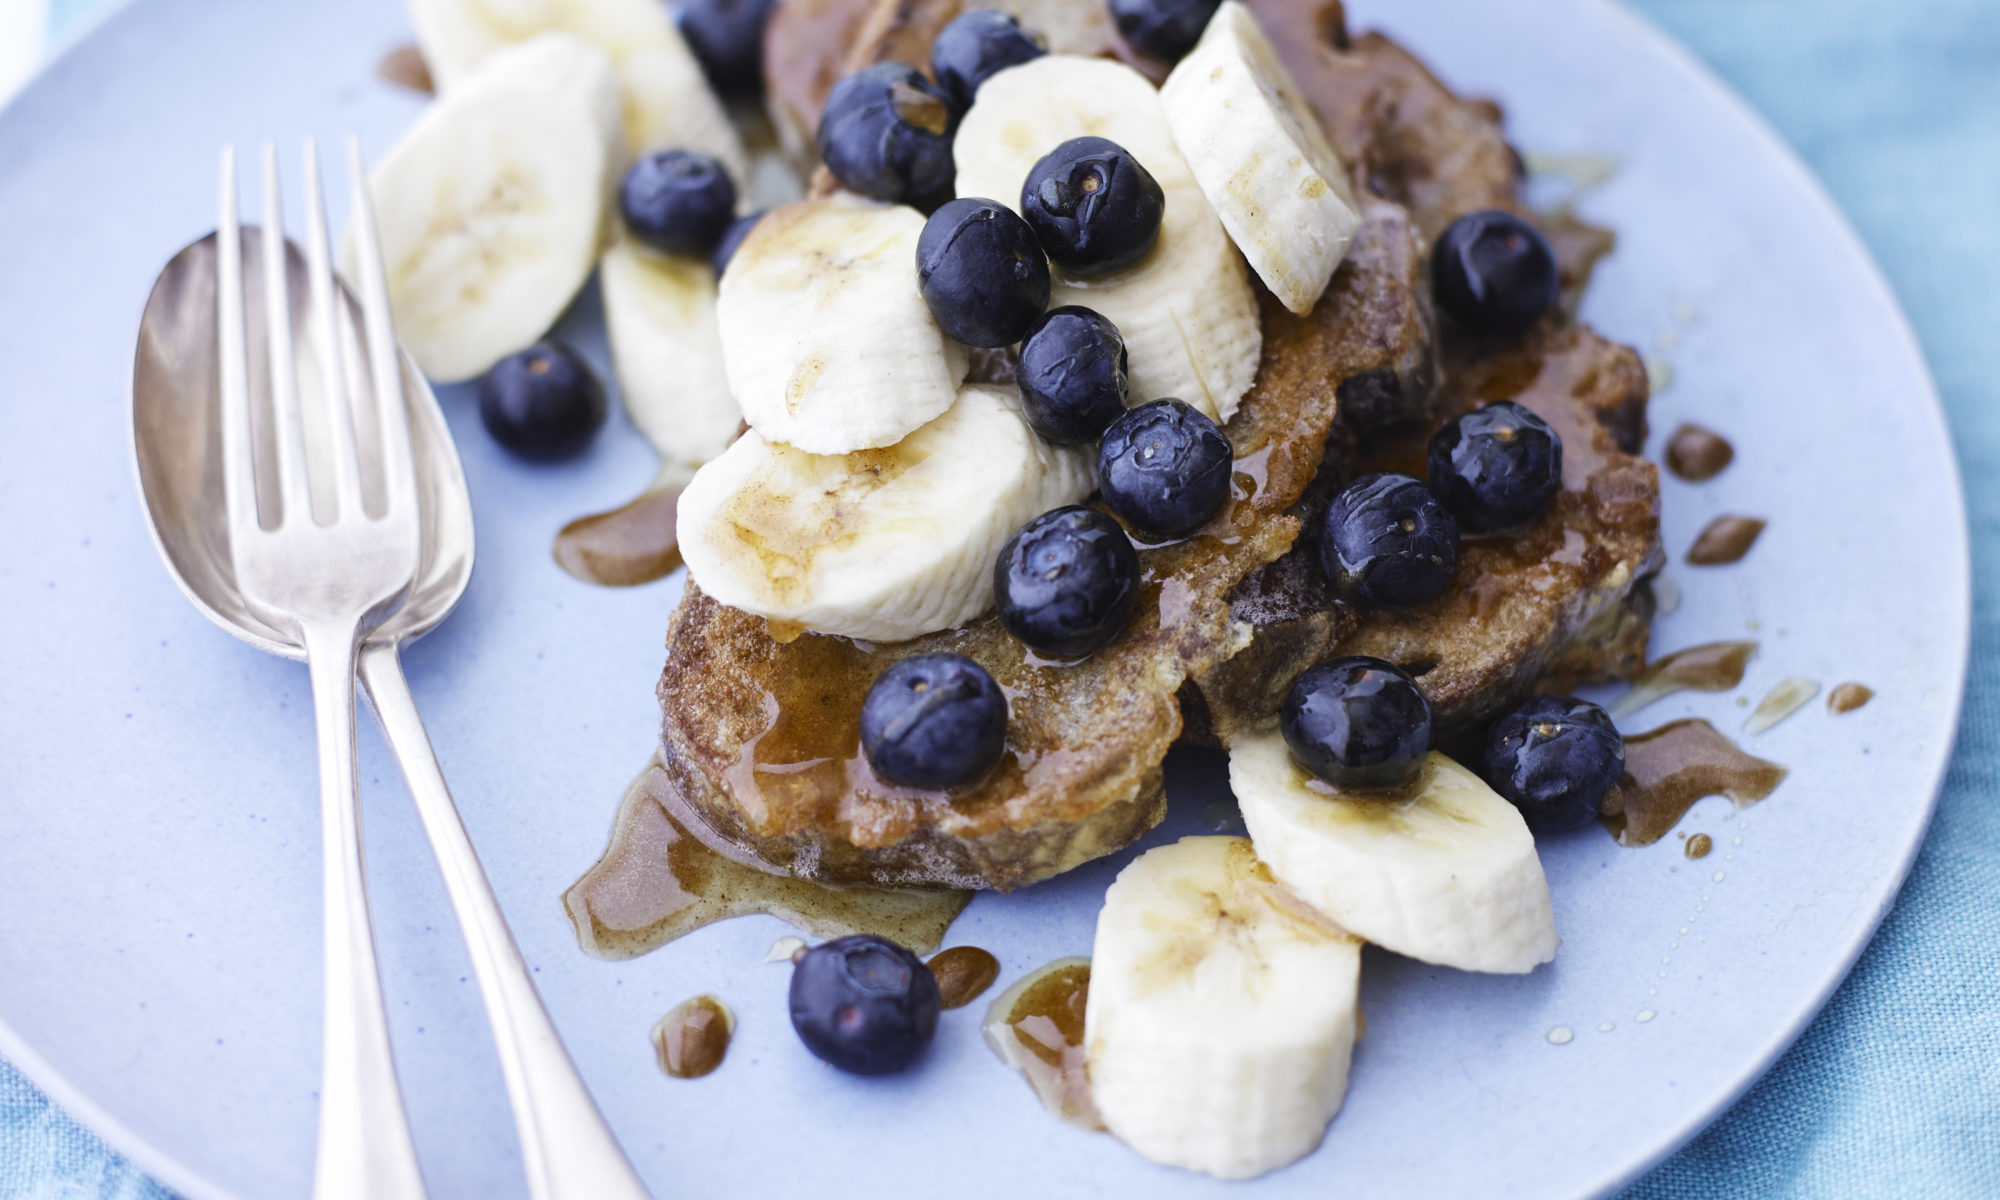 French toast with cinnamon honey with sliced banana and blueberries